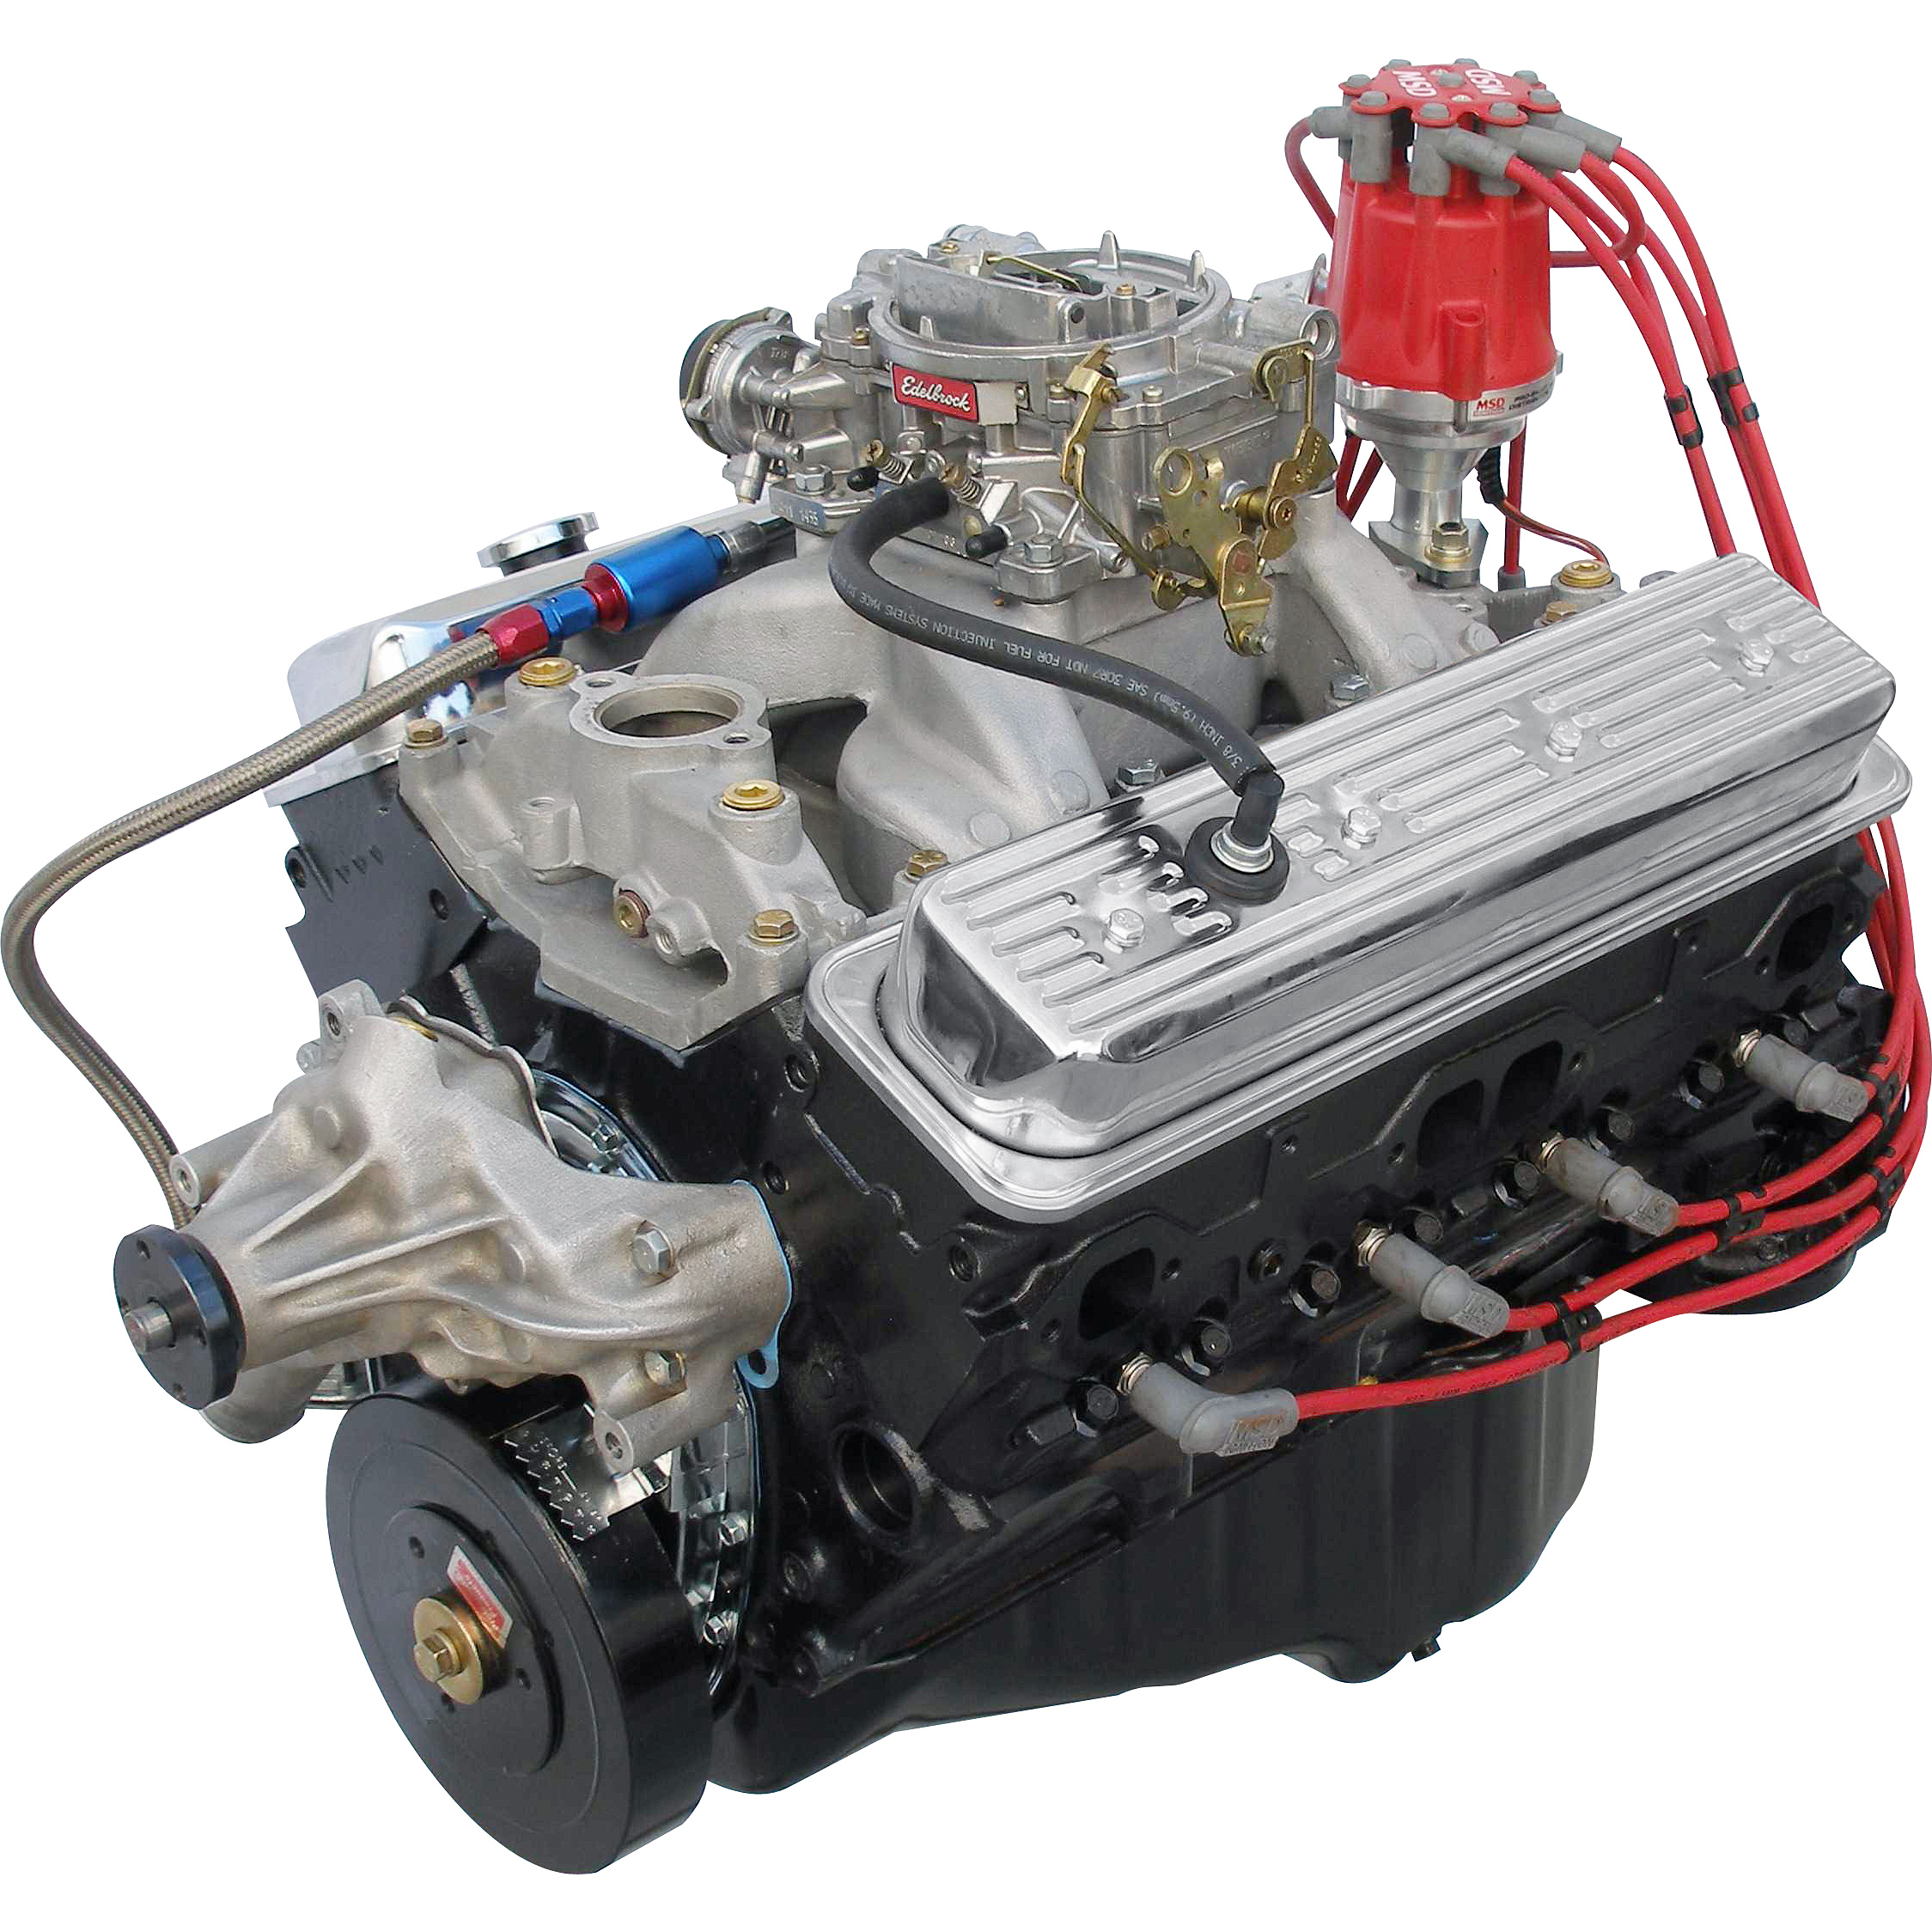 Mll Bp Ctc W on Chevy 383 Fuel Injected Crate Engine